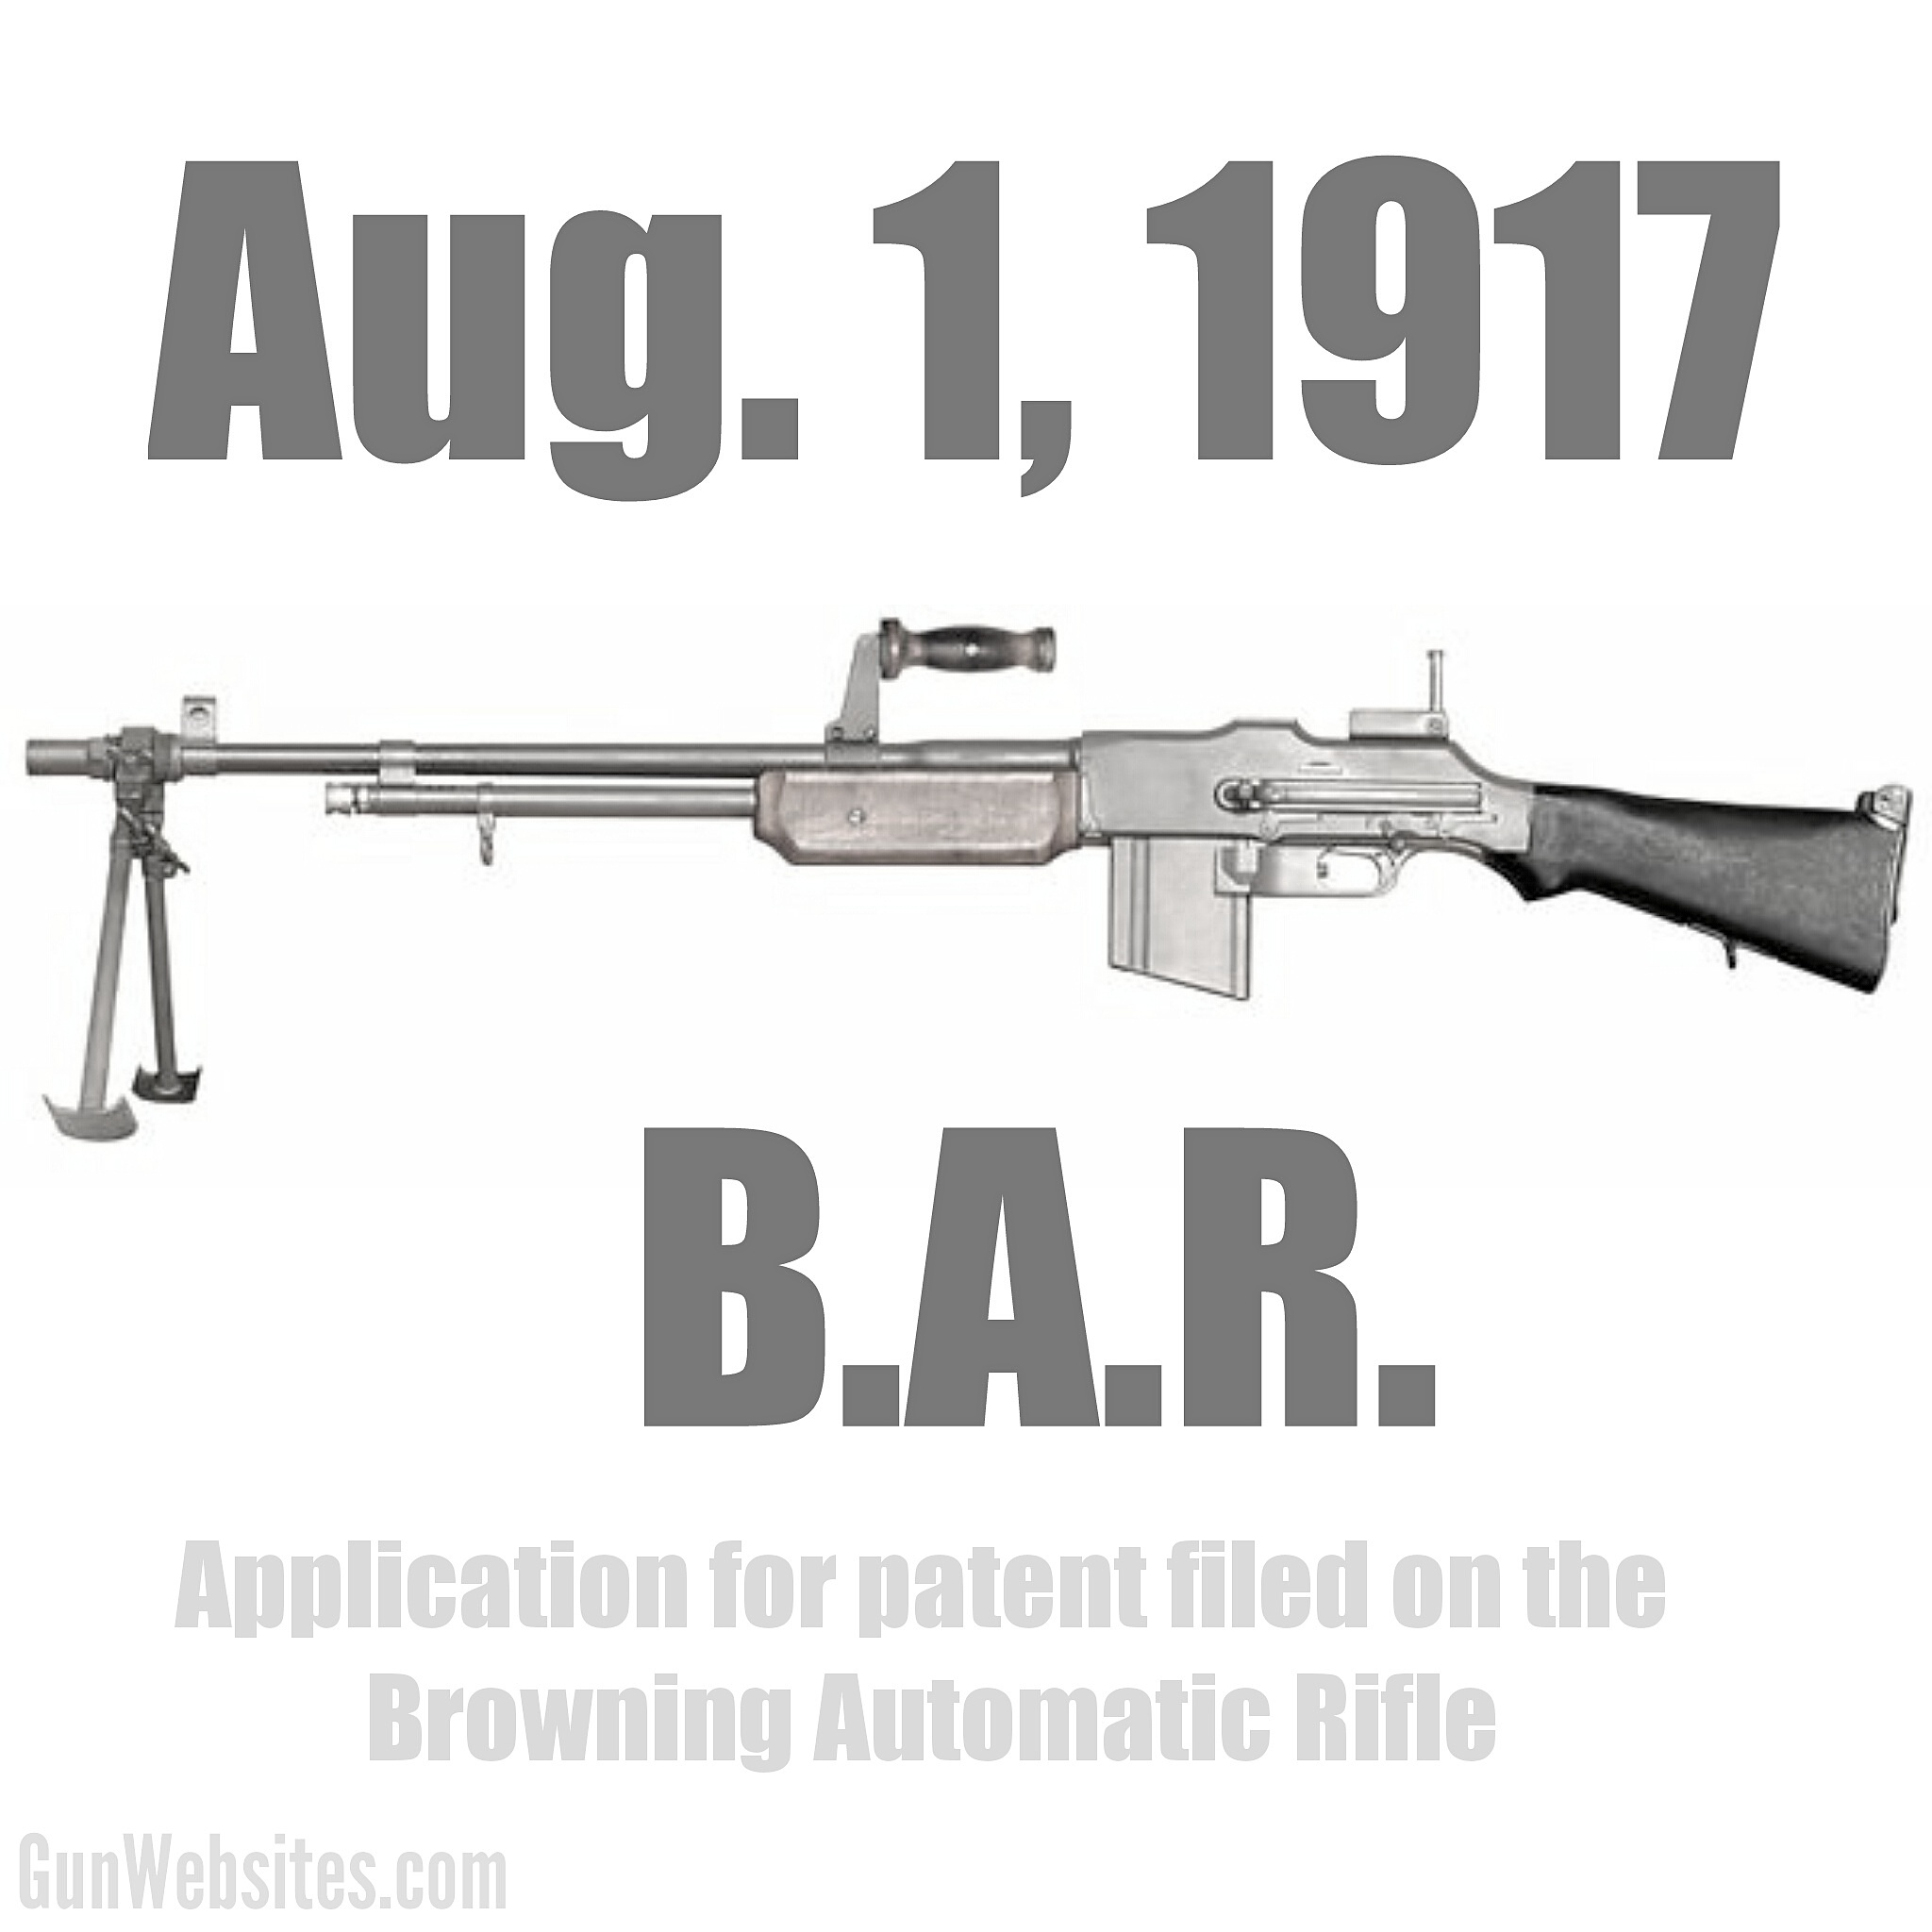 Application for patent filed on the Browning Automatic Rifle. The B.A.R. first saw combat in 1918.